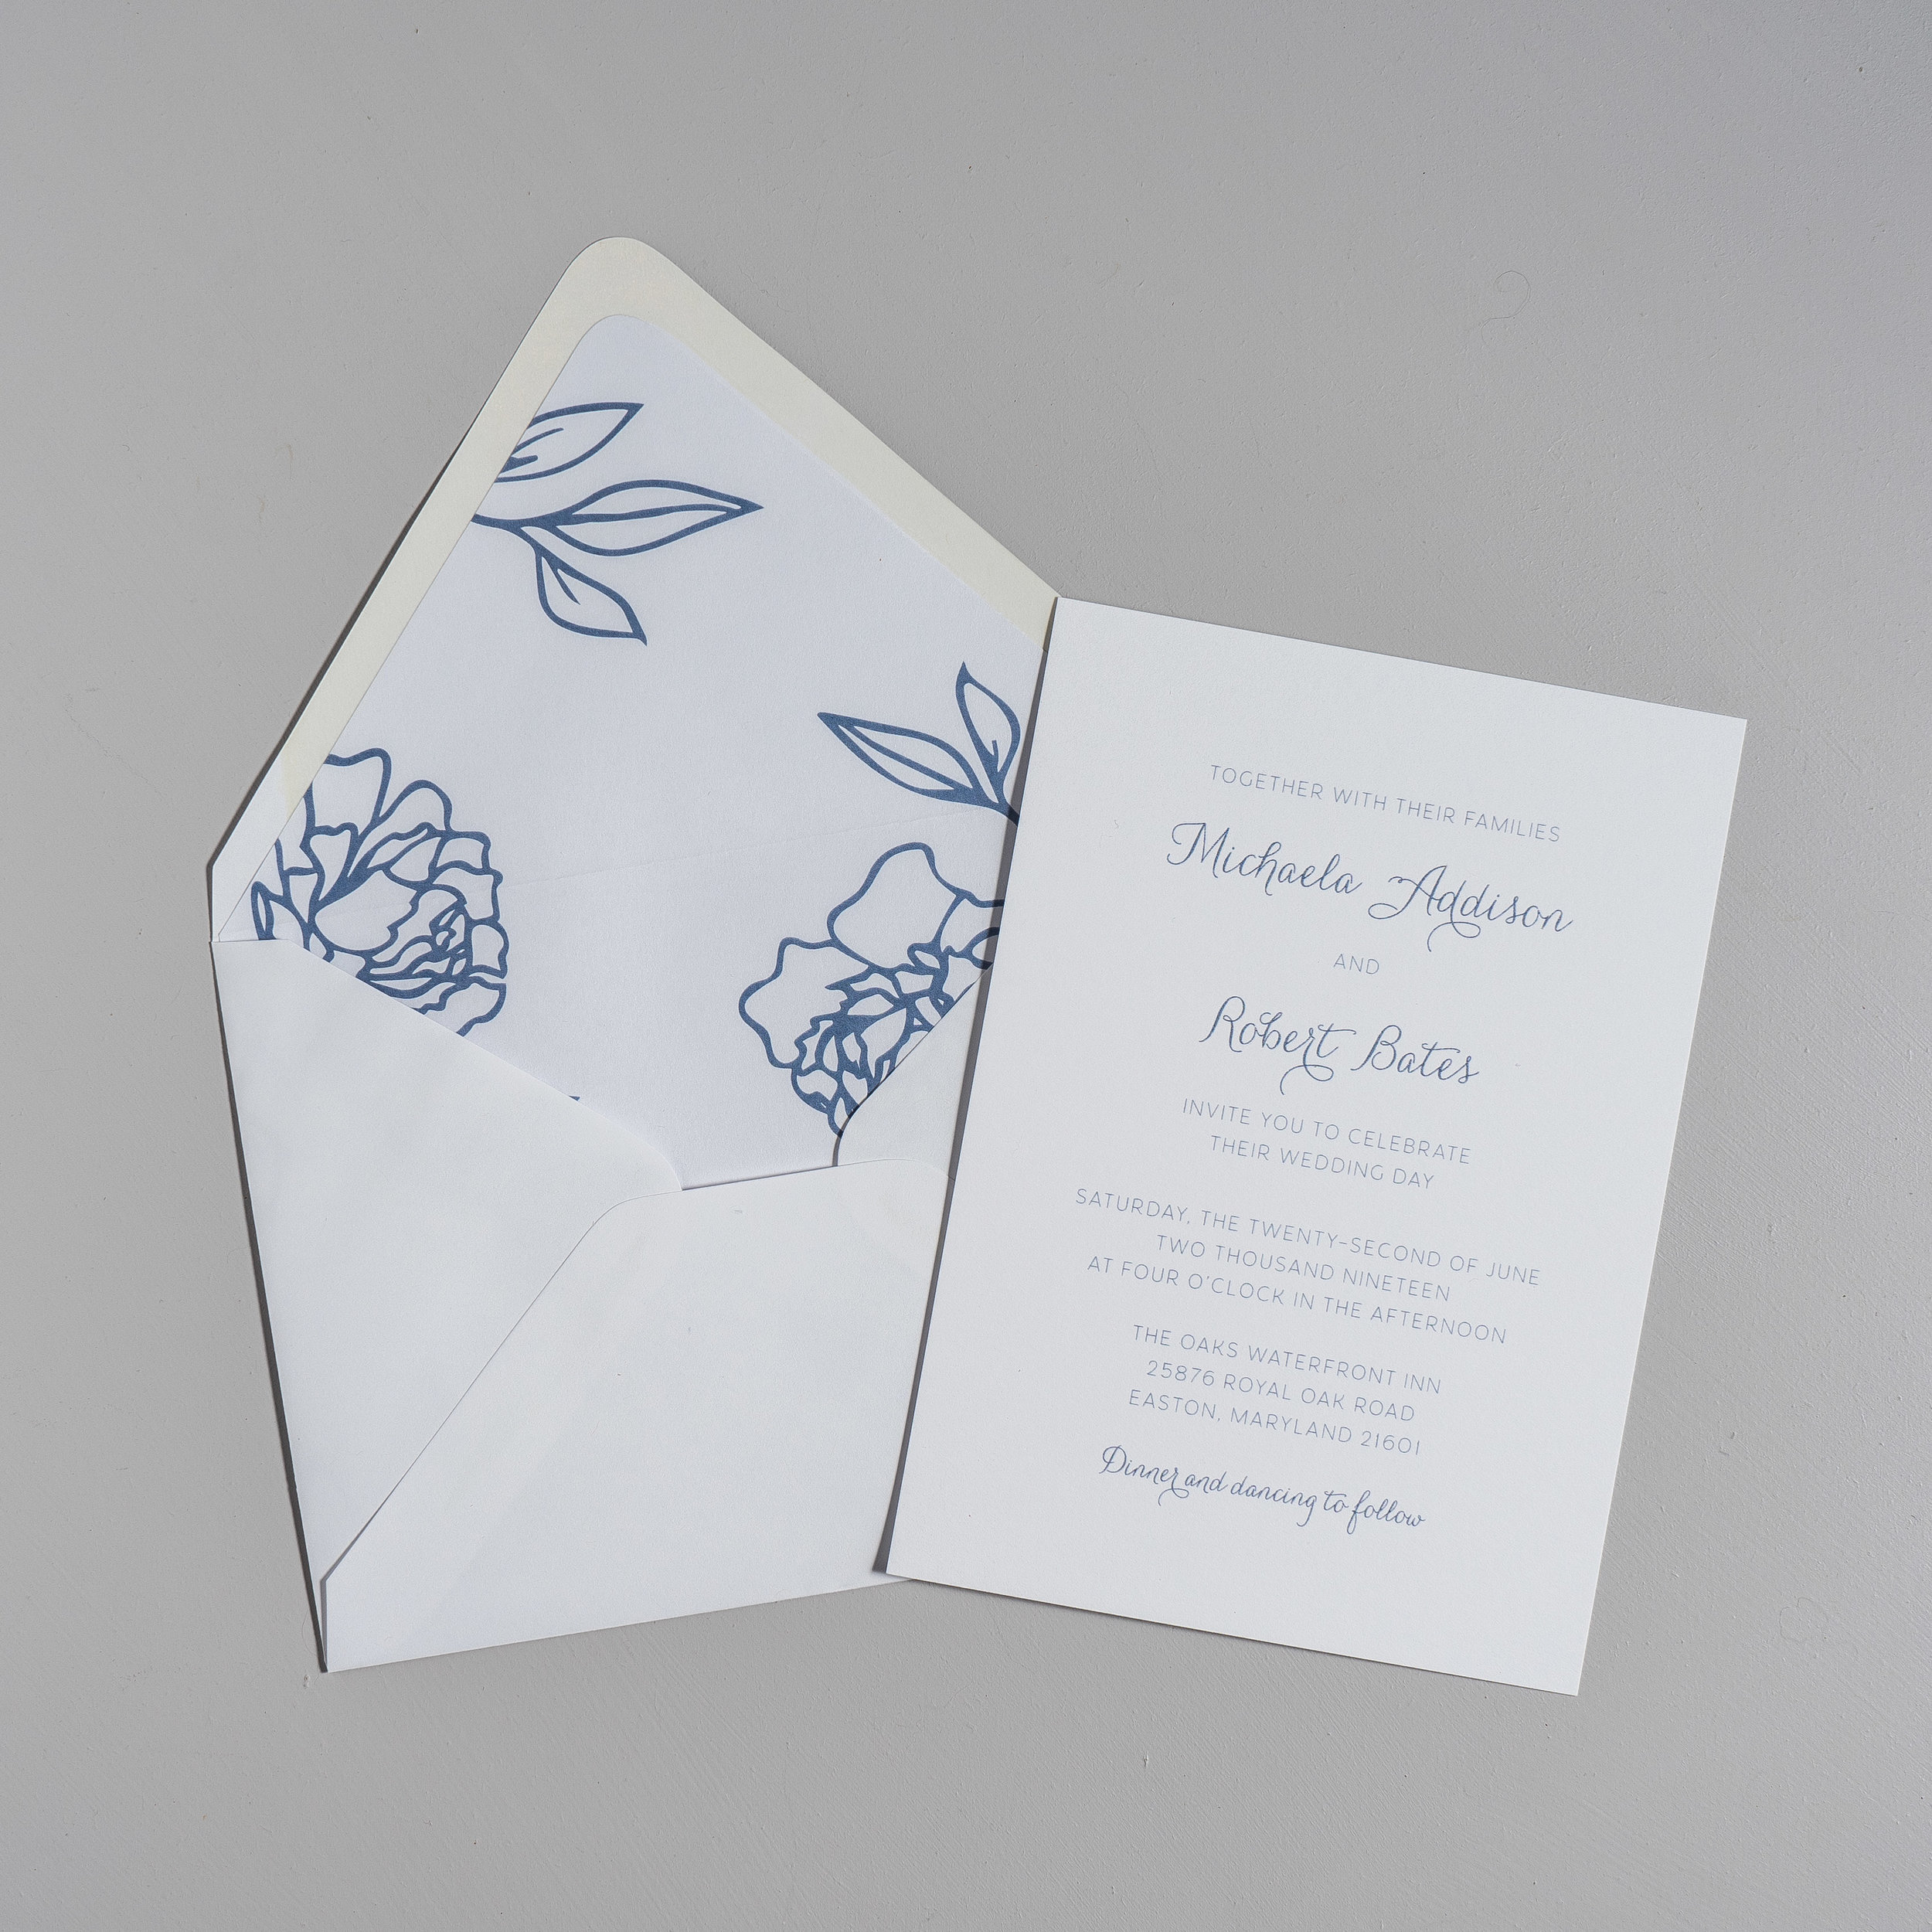 Dusty Blue Elegance V2 Wedding Invitations by Just Jurf-5.jpg